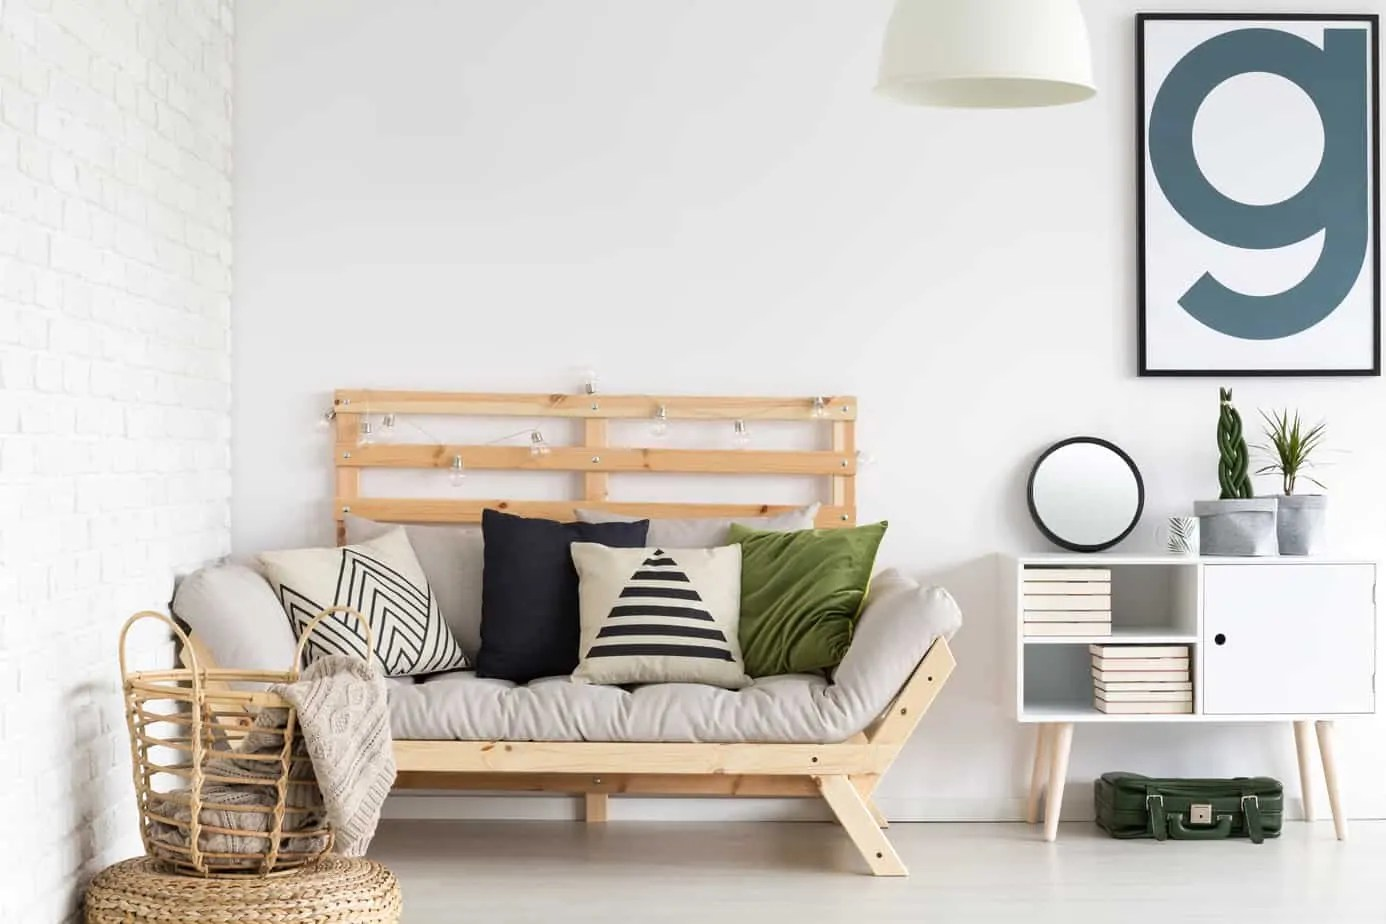 5 Steps to Effectively Plan to Downsize Your House